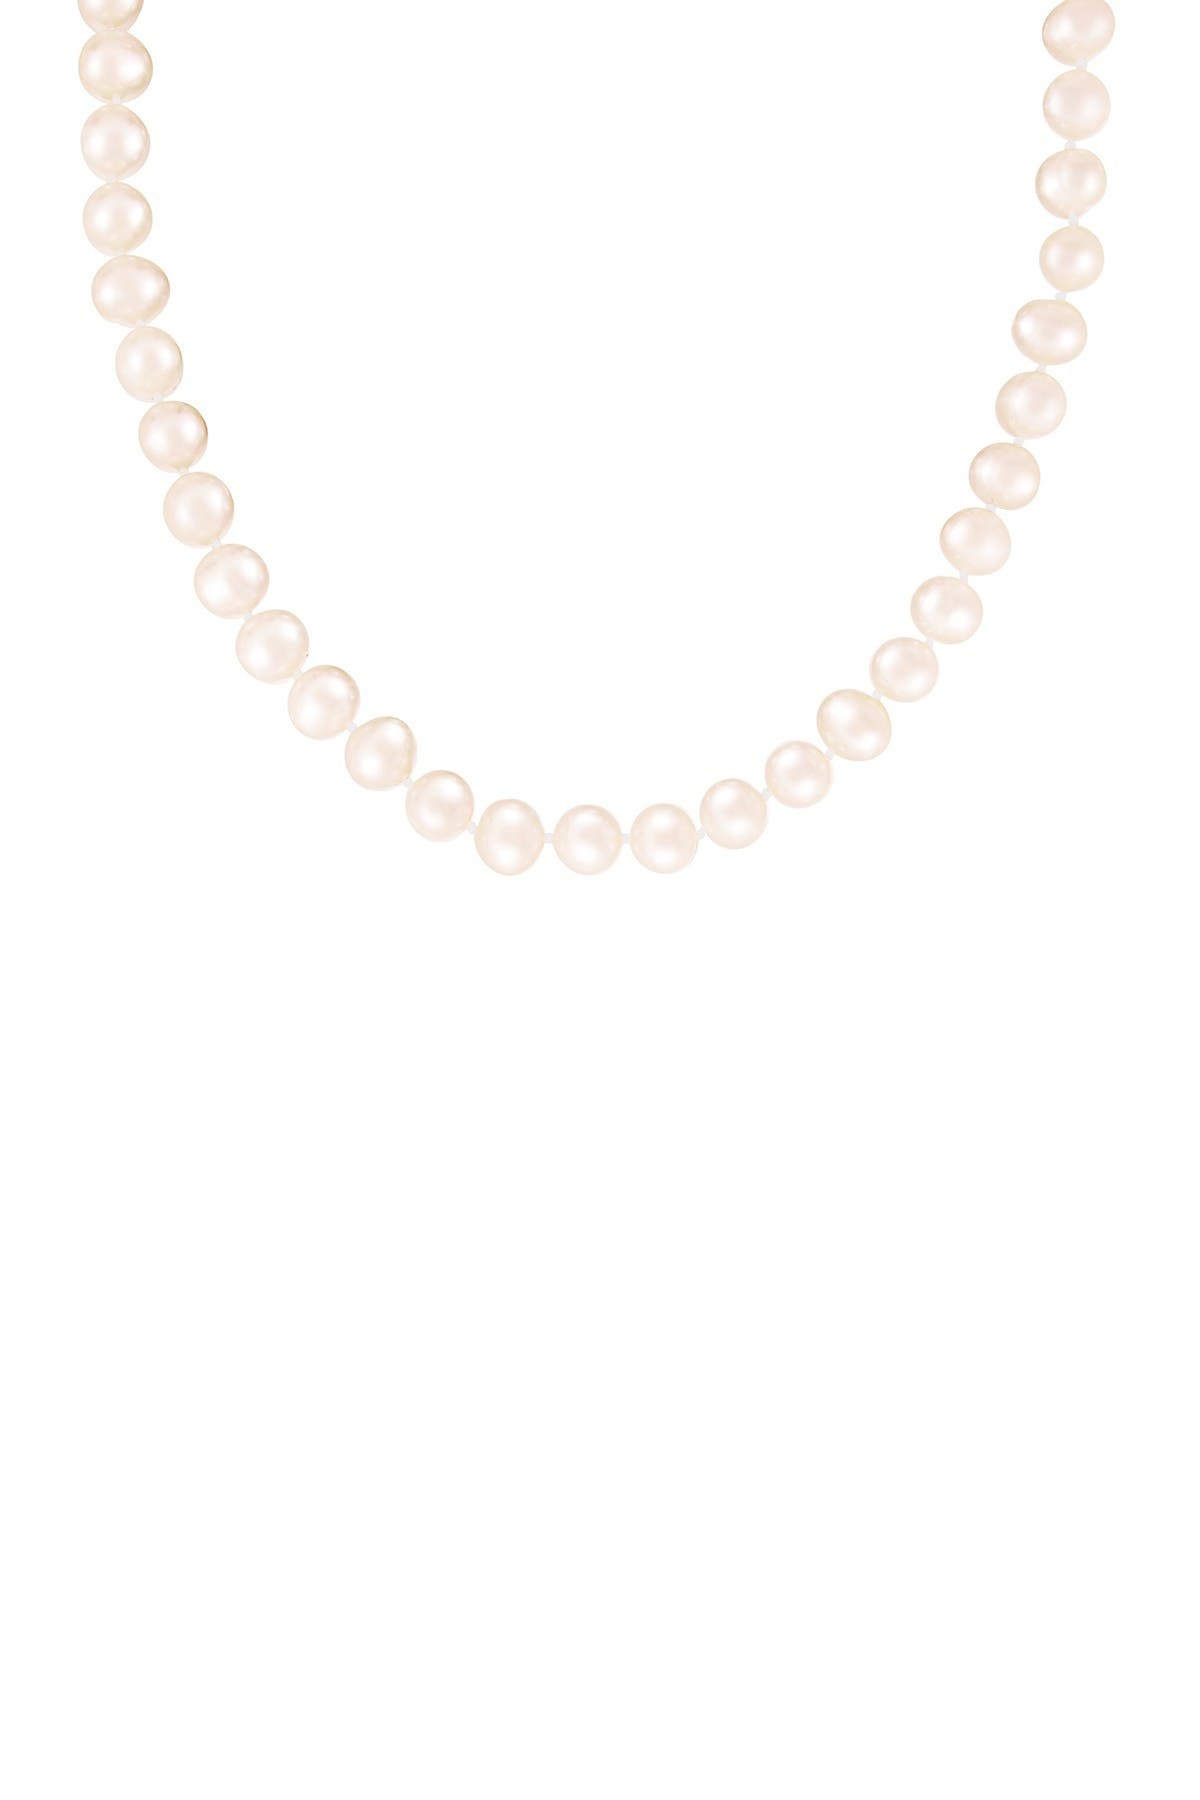 Image of Splendid Pearls Sterling Silver 10-11mm Freshwater Pearl Necklace